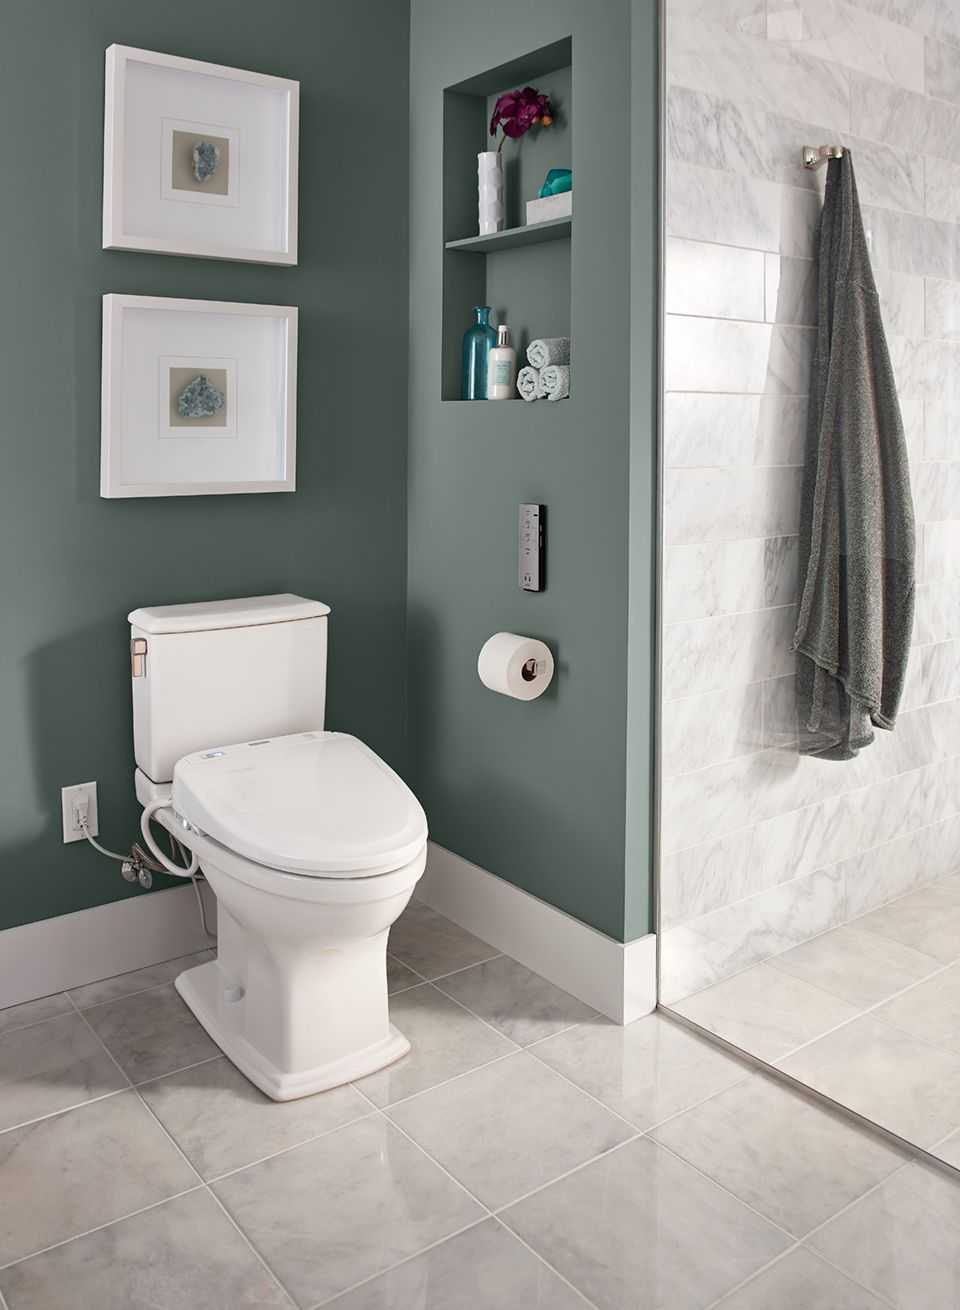 Connelly Two Piece Toilet 1 28 Gpf 0 9 Elongated